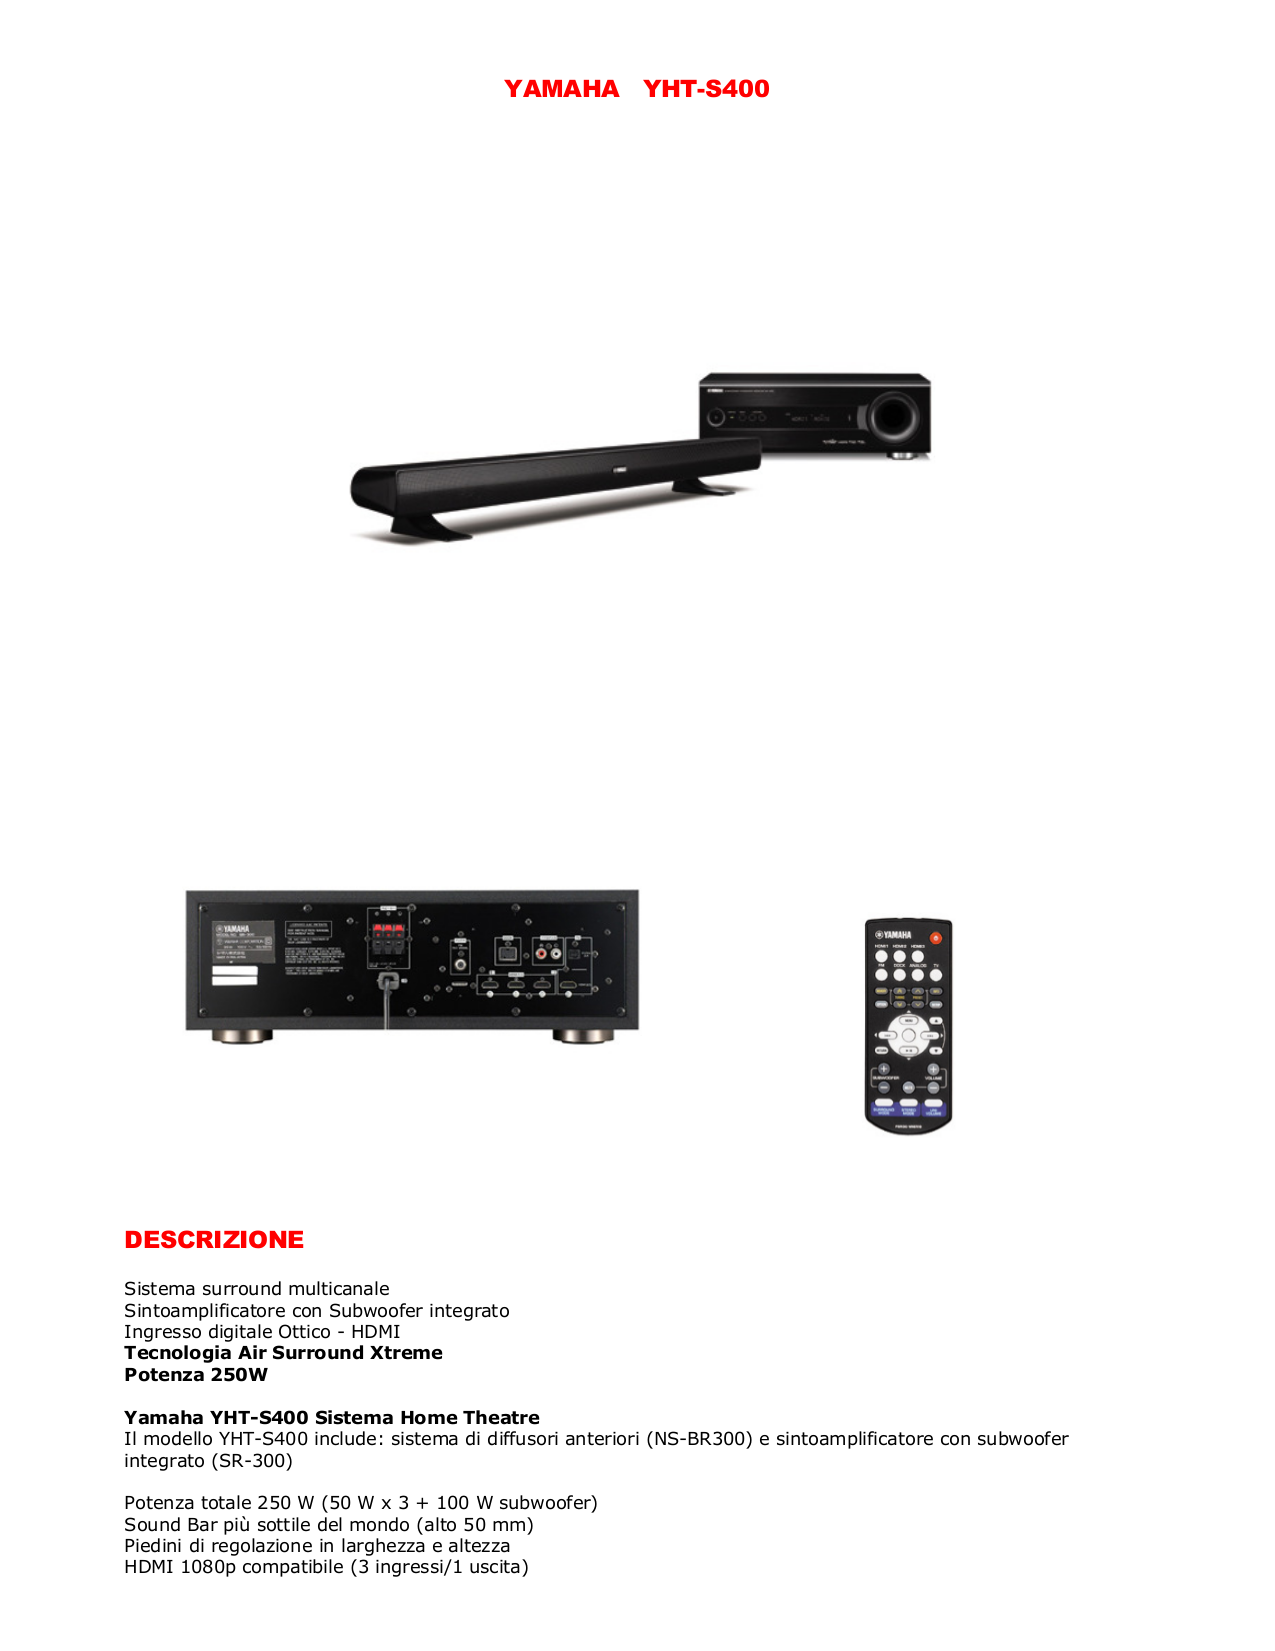 download free pdf for yamaha yht s400 home theater manual rh umlib com yamaha yht-s400 manual Yht Yamaha S400bl